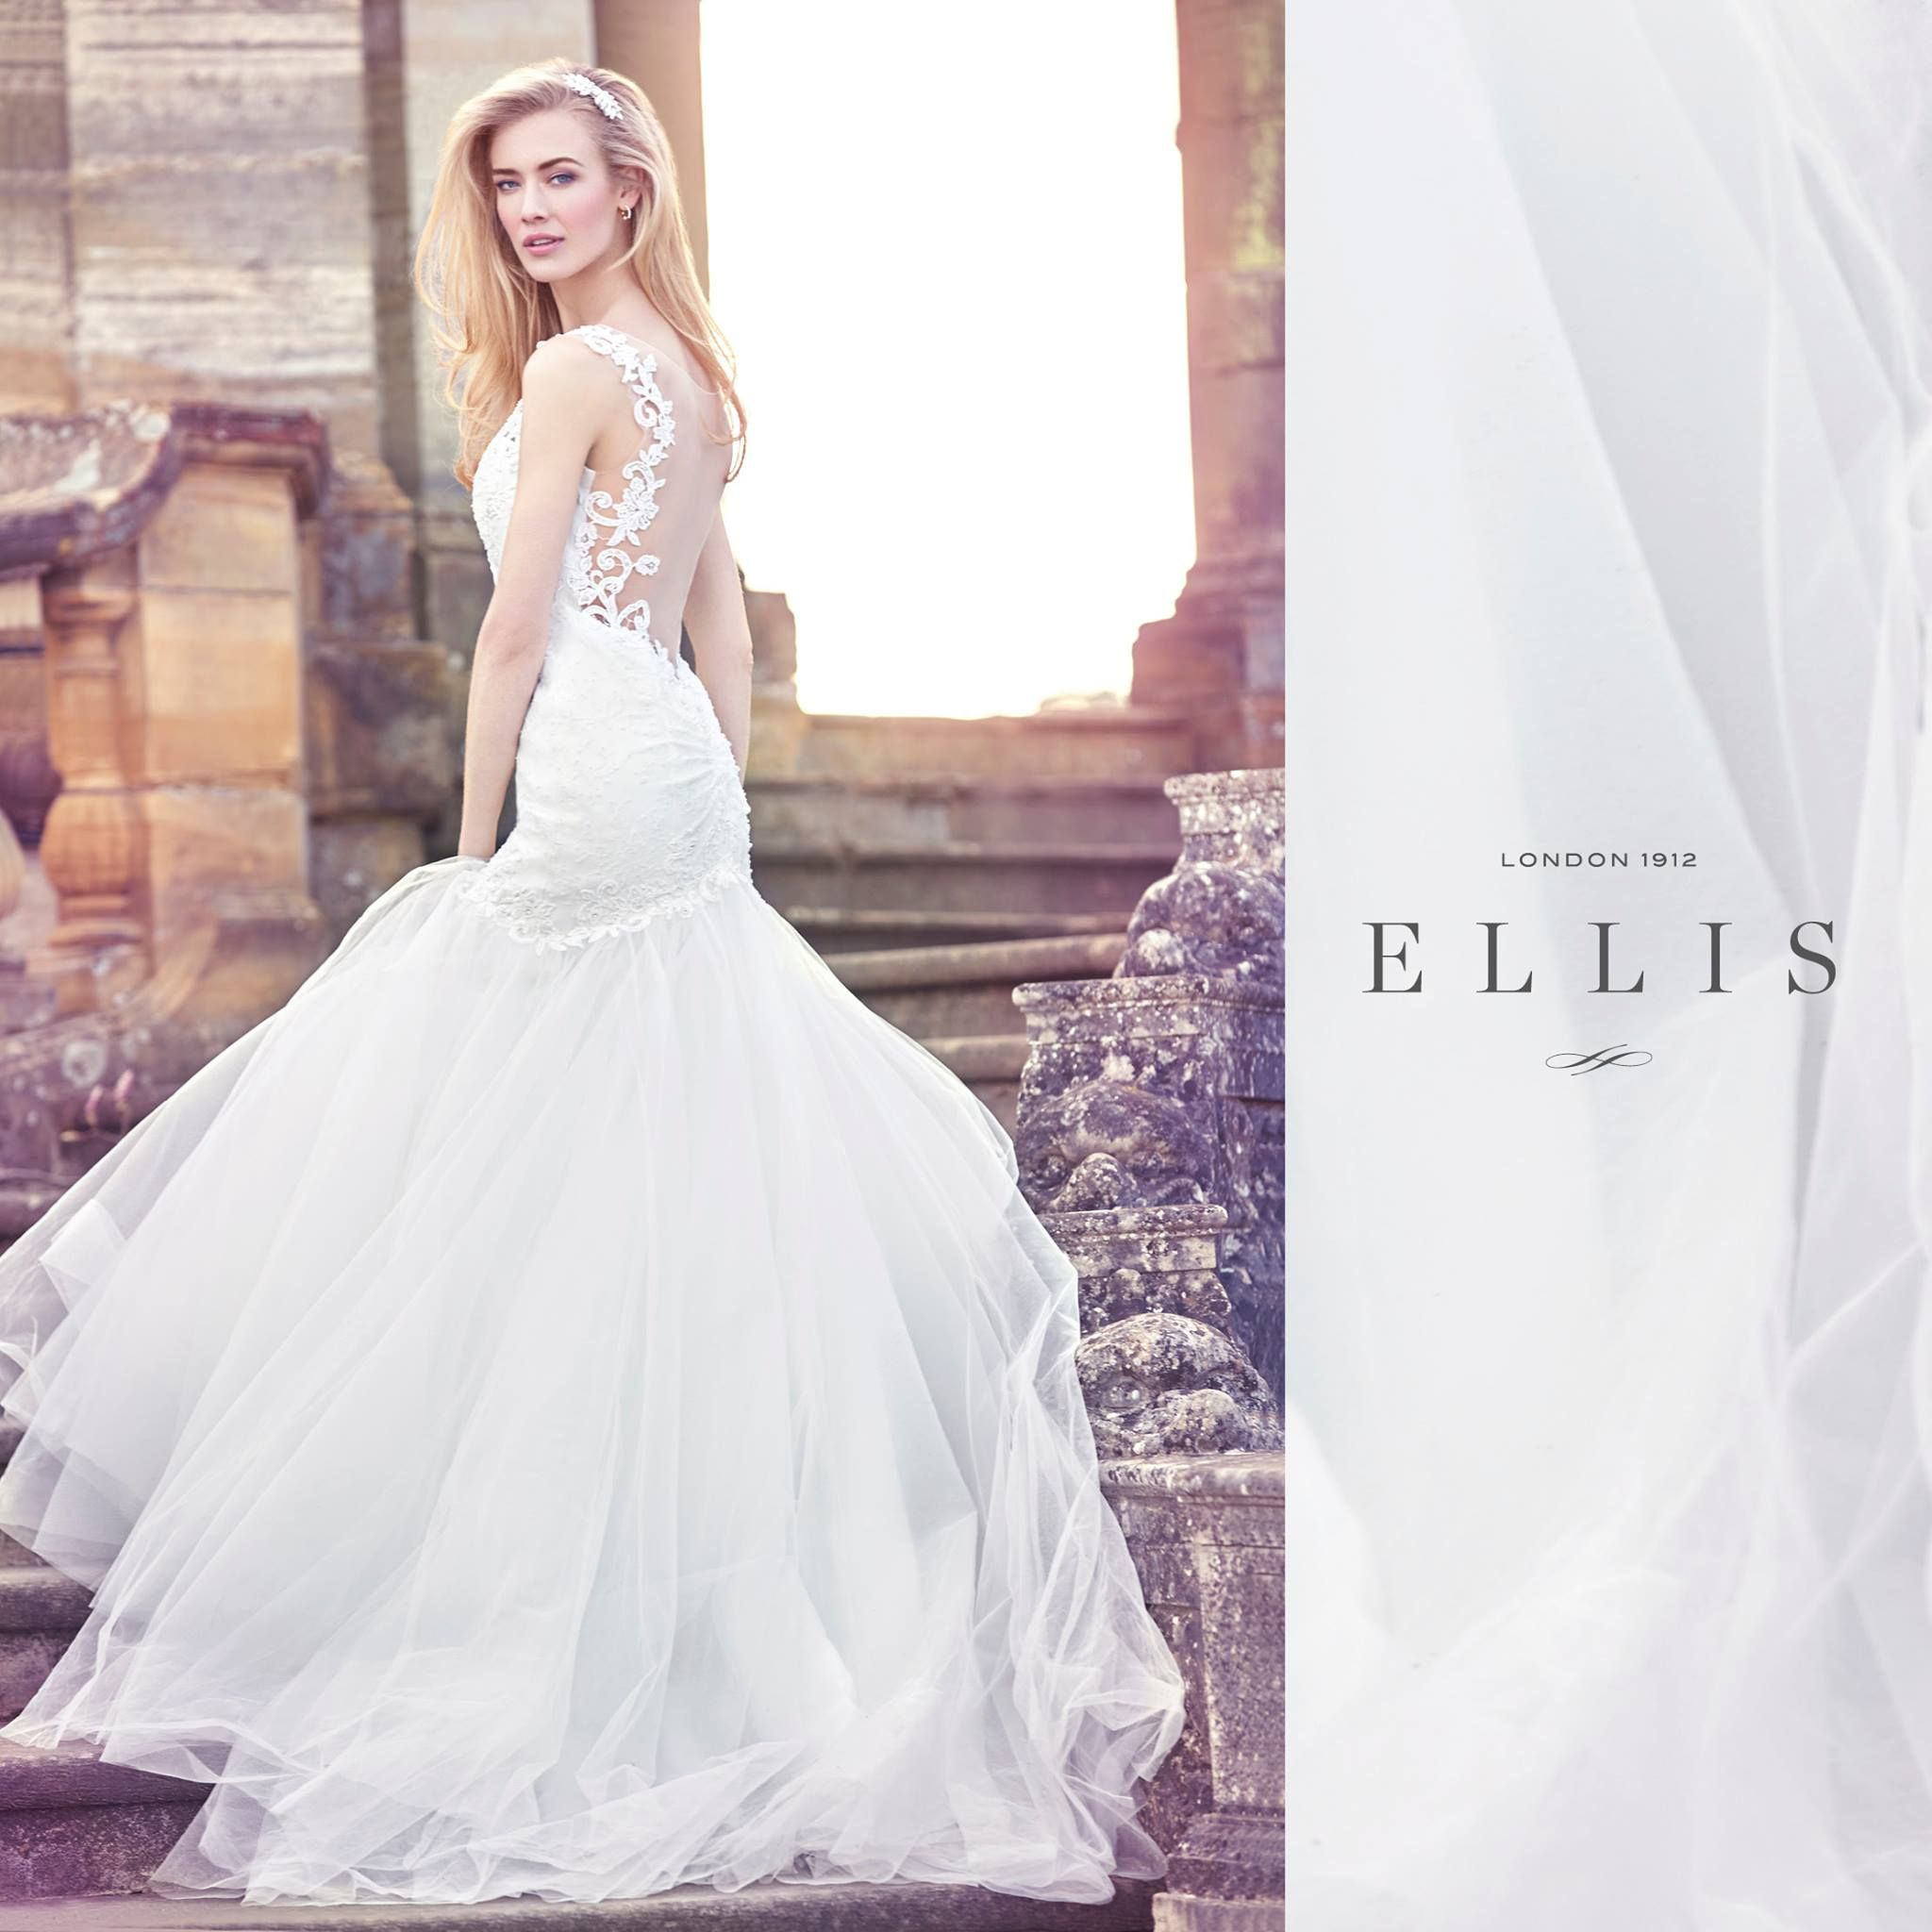 Ellis has been creating modern designs for an english rose type magnolia collection ellis bridals 2016 wedding dresses are delicately placed and lightly beaded on naturally silhouetted that give a more relaxed feel ombrellifo Choice Image